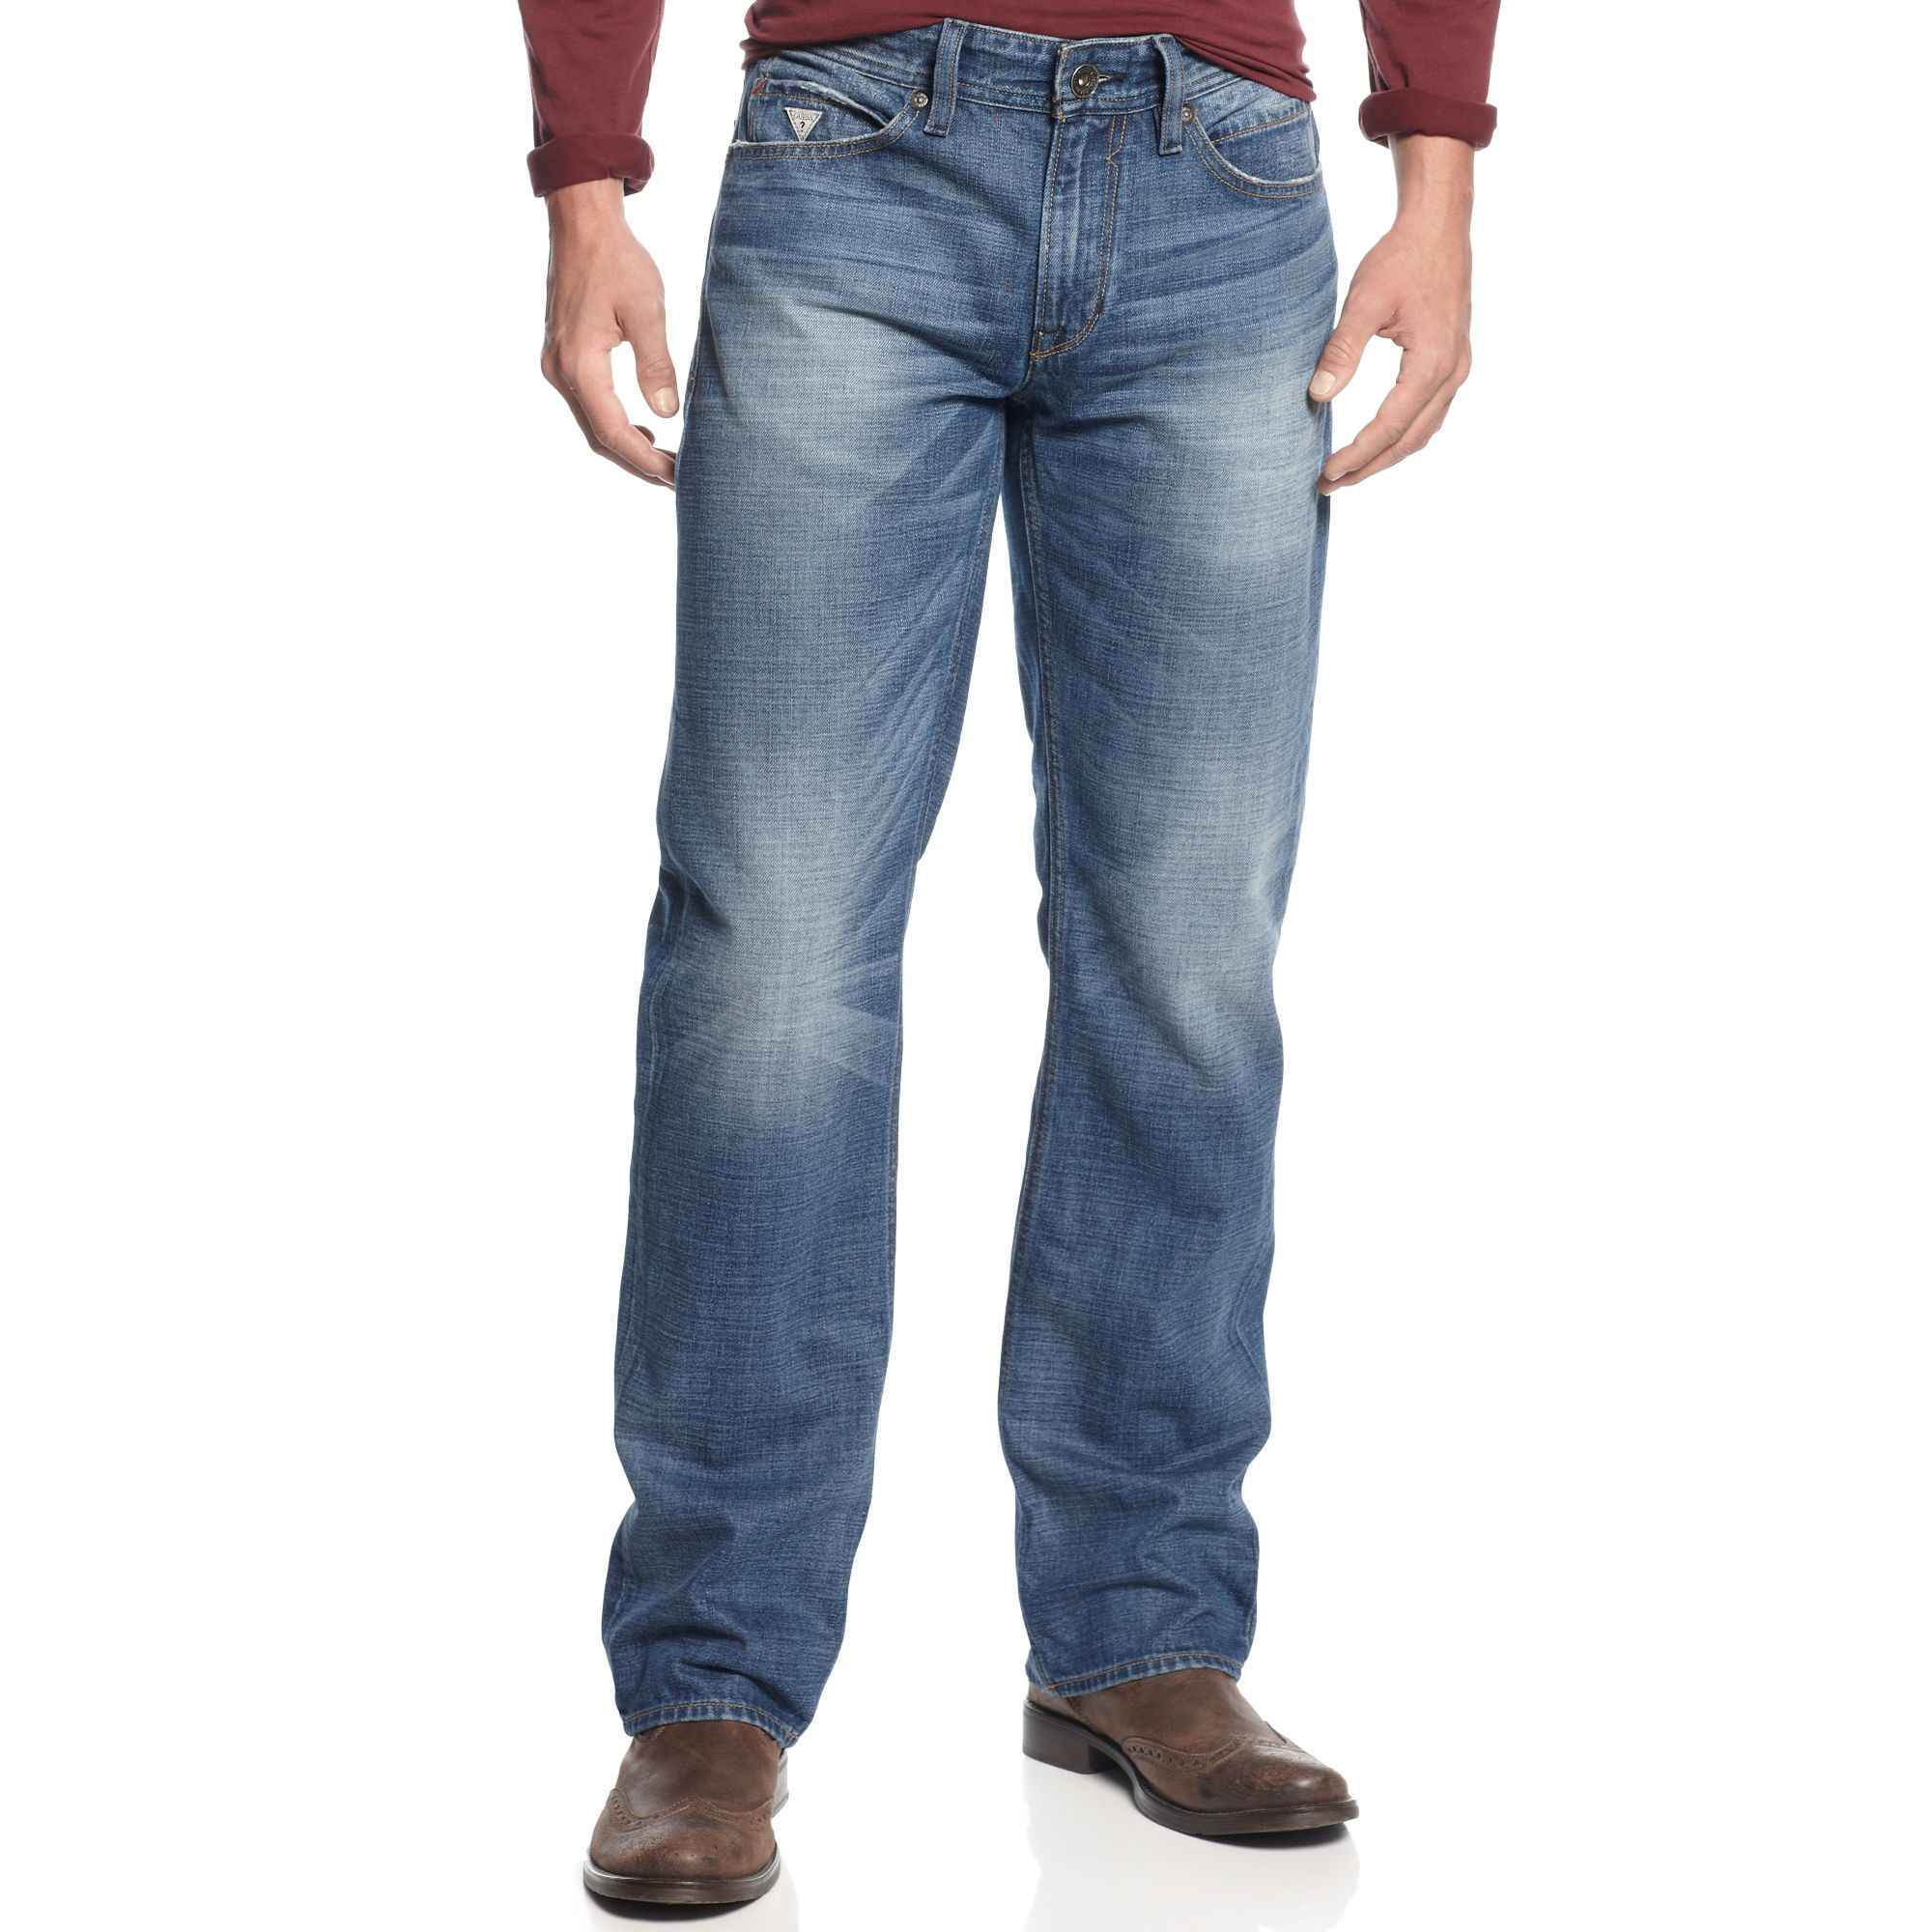 Guess Jeans Desmond Expedition Wash Relaxed Fit In Blue